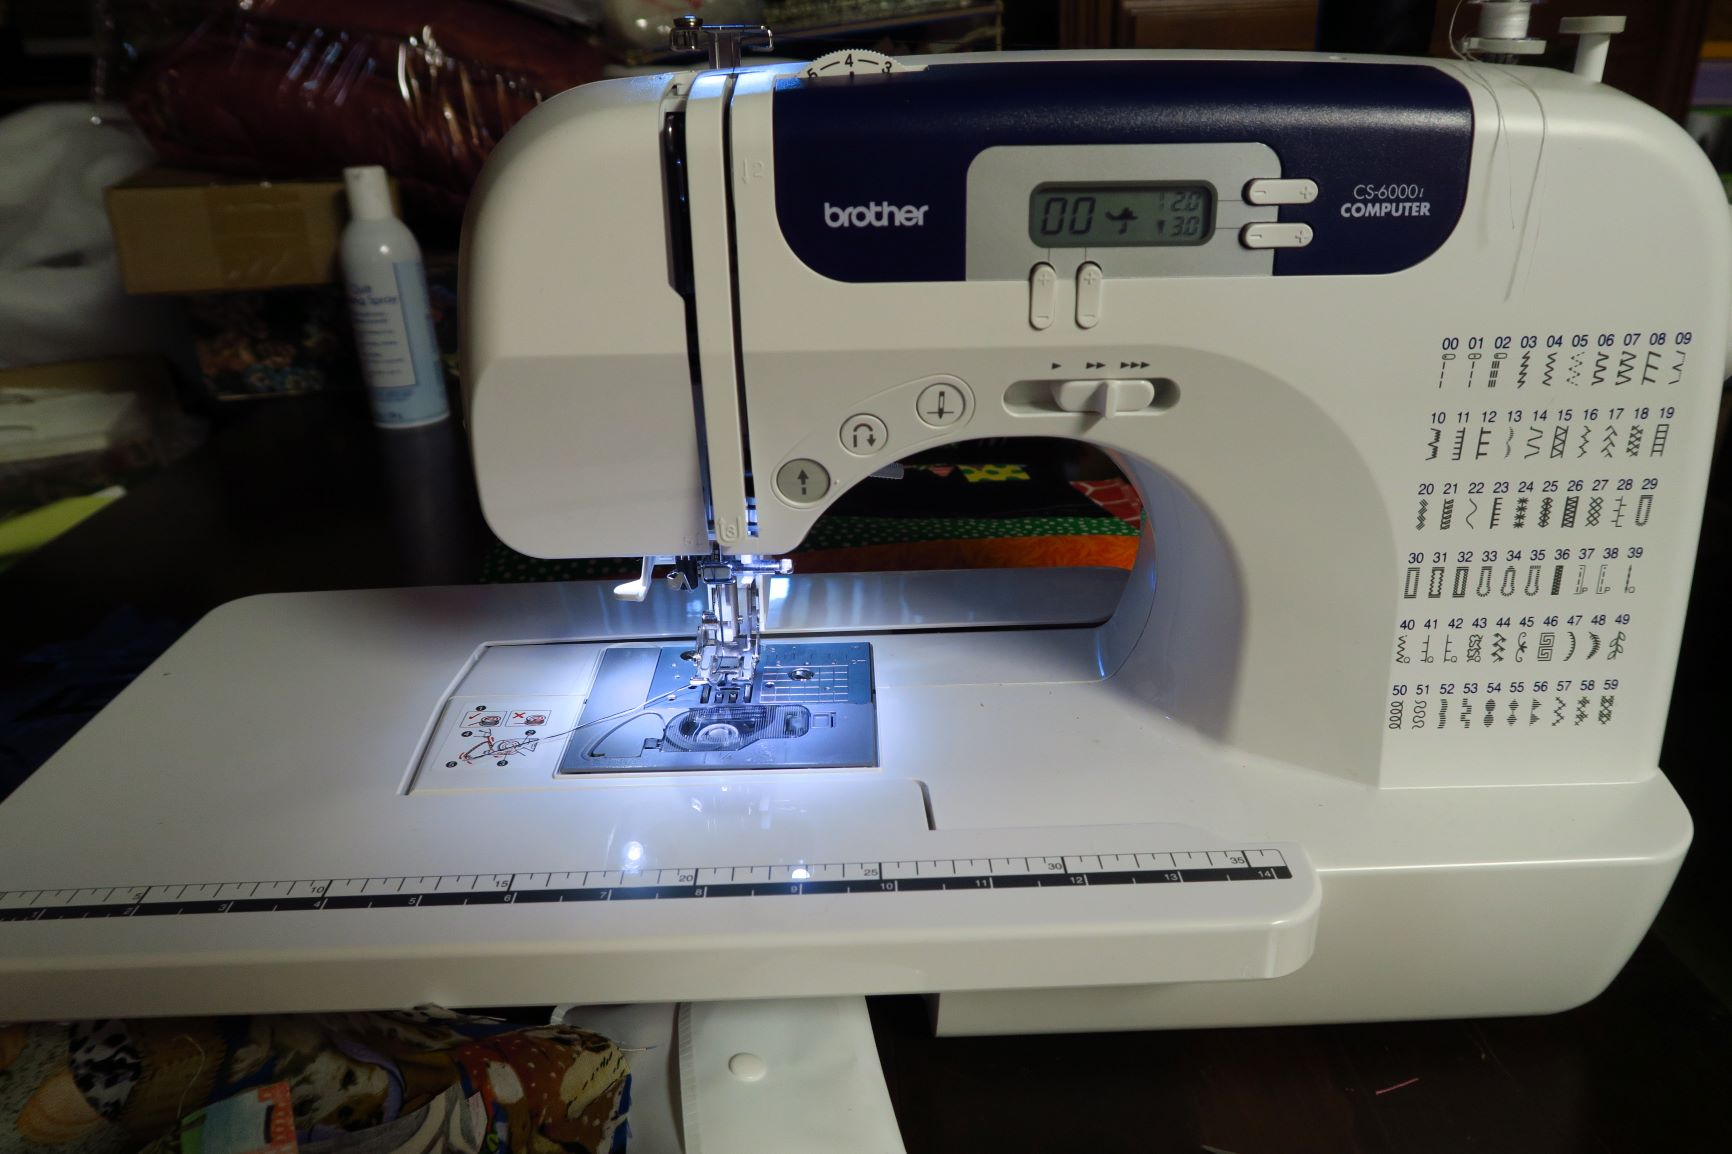 This is the brand new machine my sis is loaning me for use while I'm here.